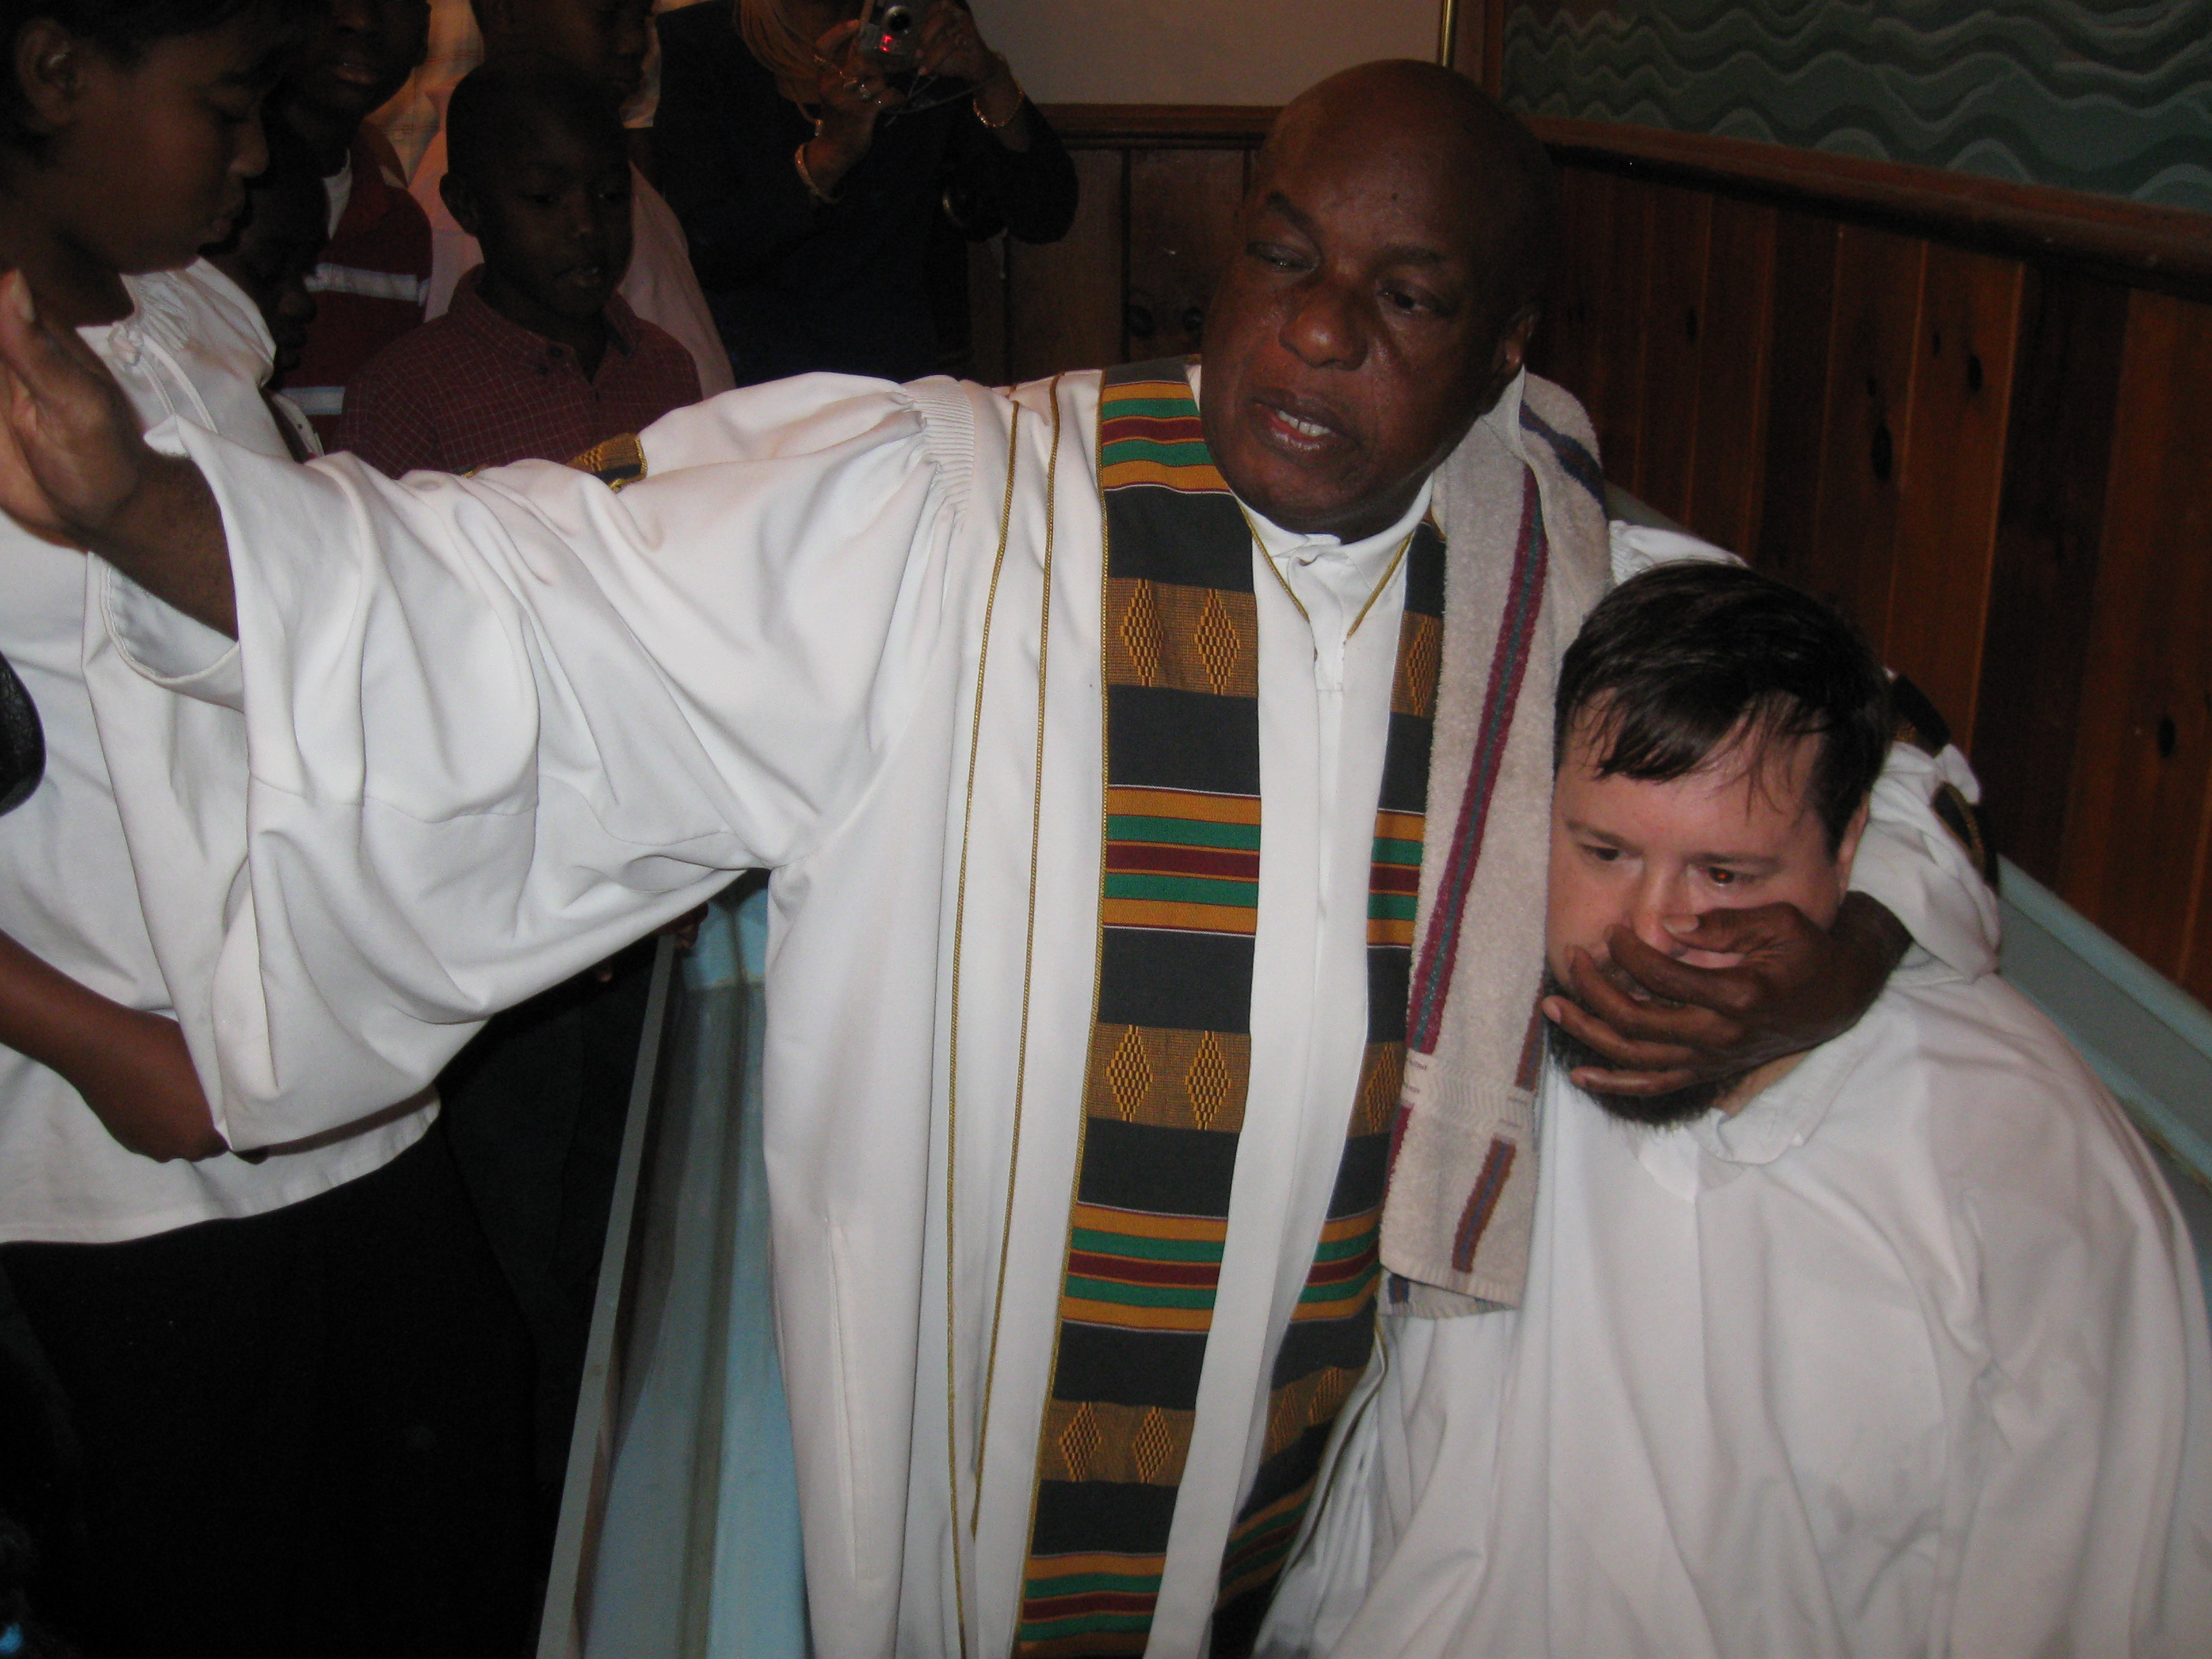 PASTOR OLIVER DORSEY PERFORMING BAPTISM IN THE NAME OF THE FATHER, SON AND HOLY SPIRIT (PHOTO BY PASTOR DAVIS)